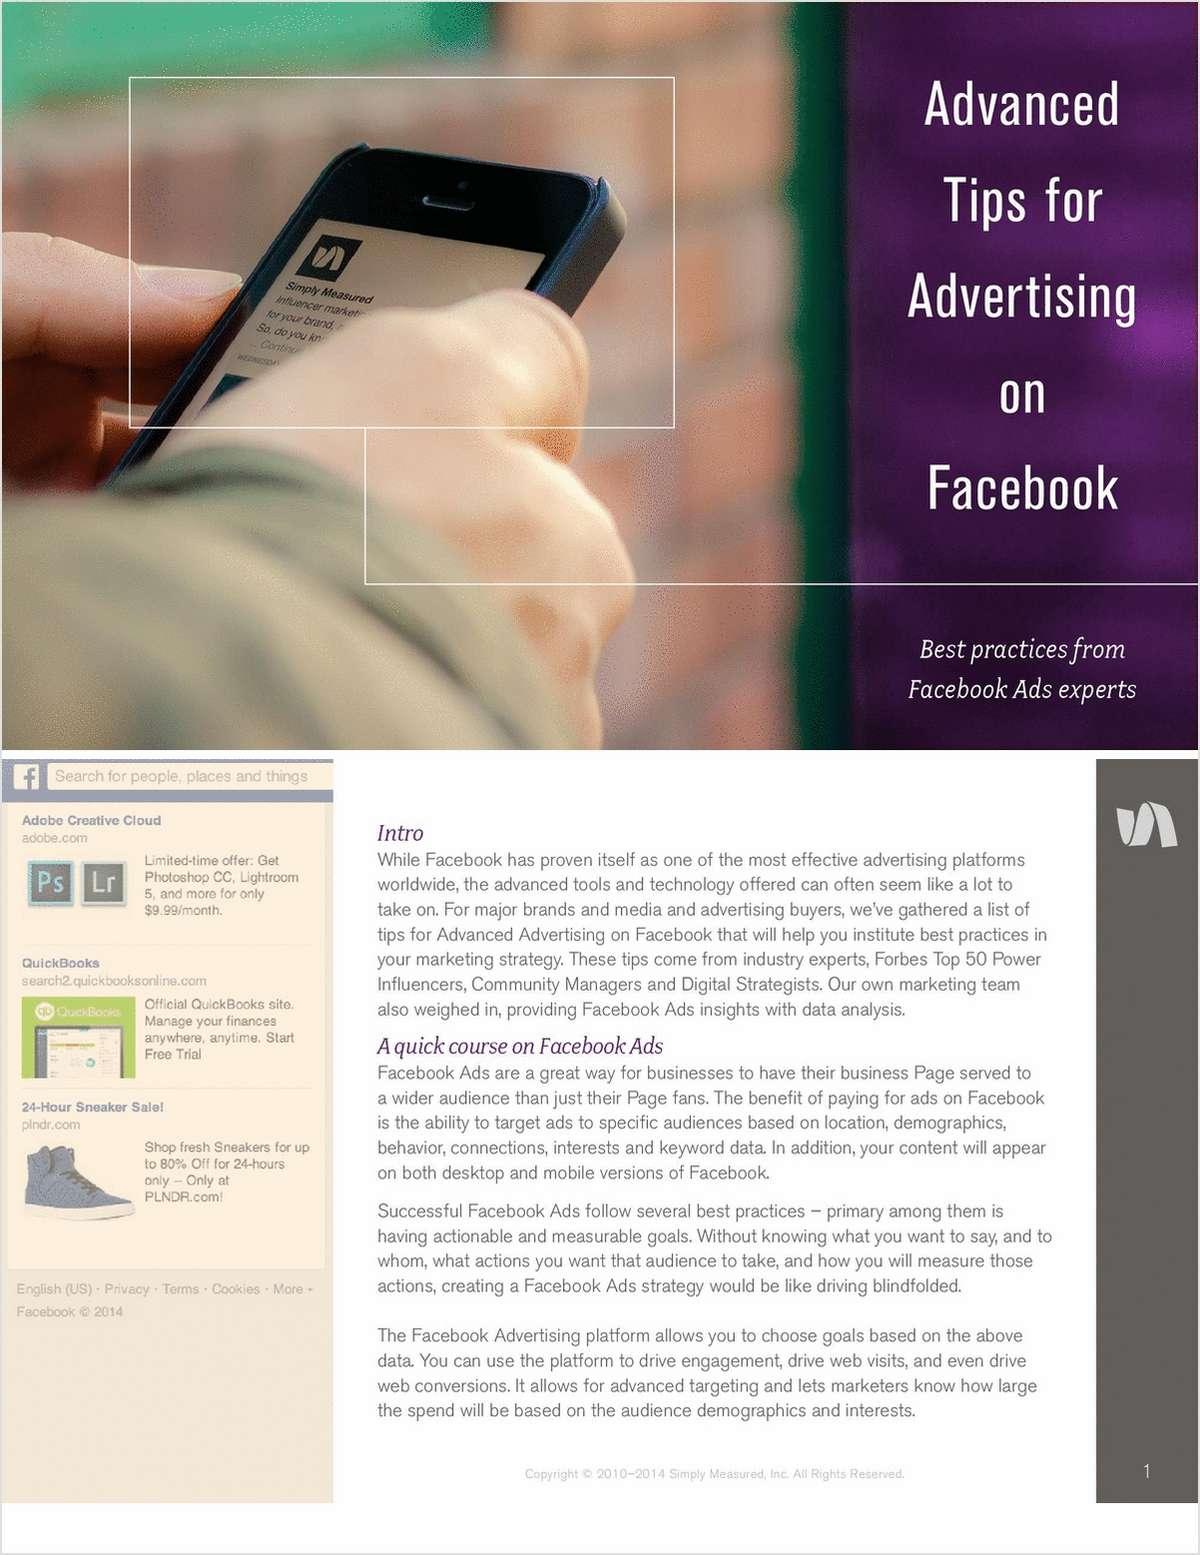 Industry Experts Reveal Advanced Tips for Advertising on Facebook